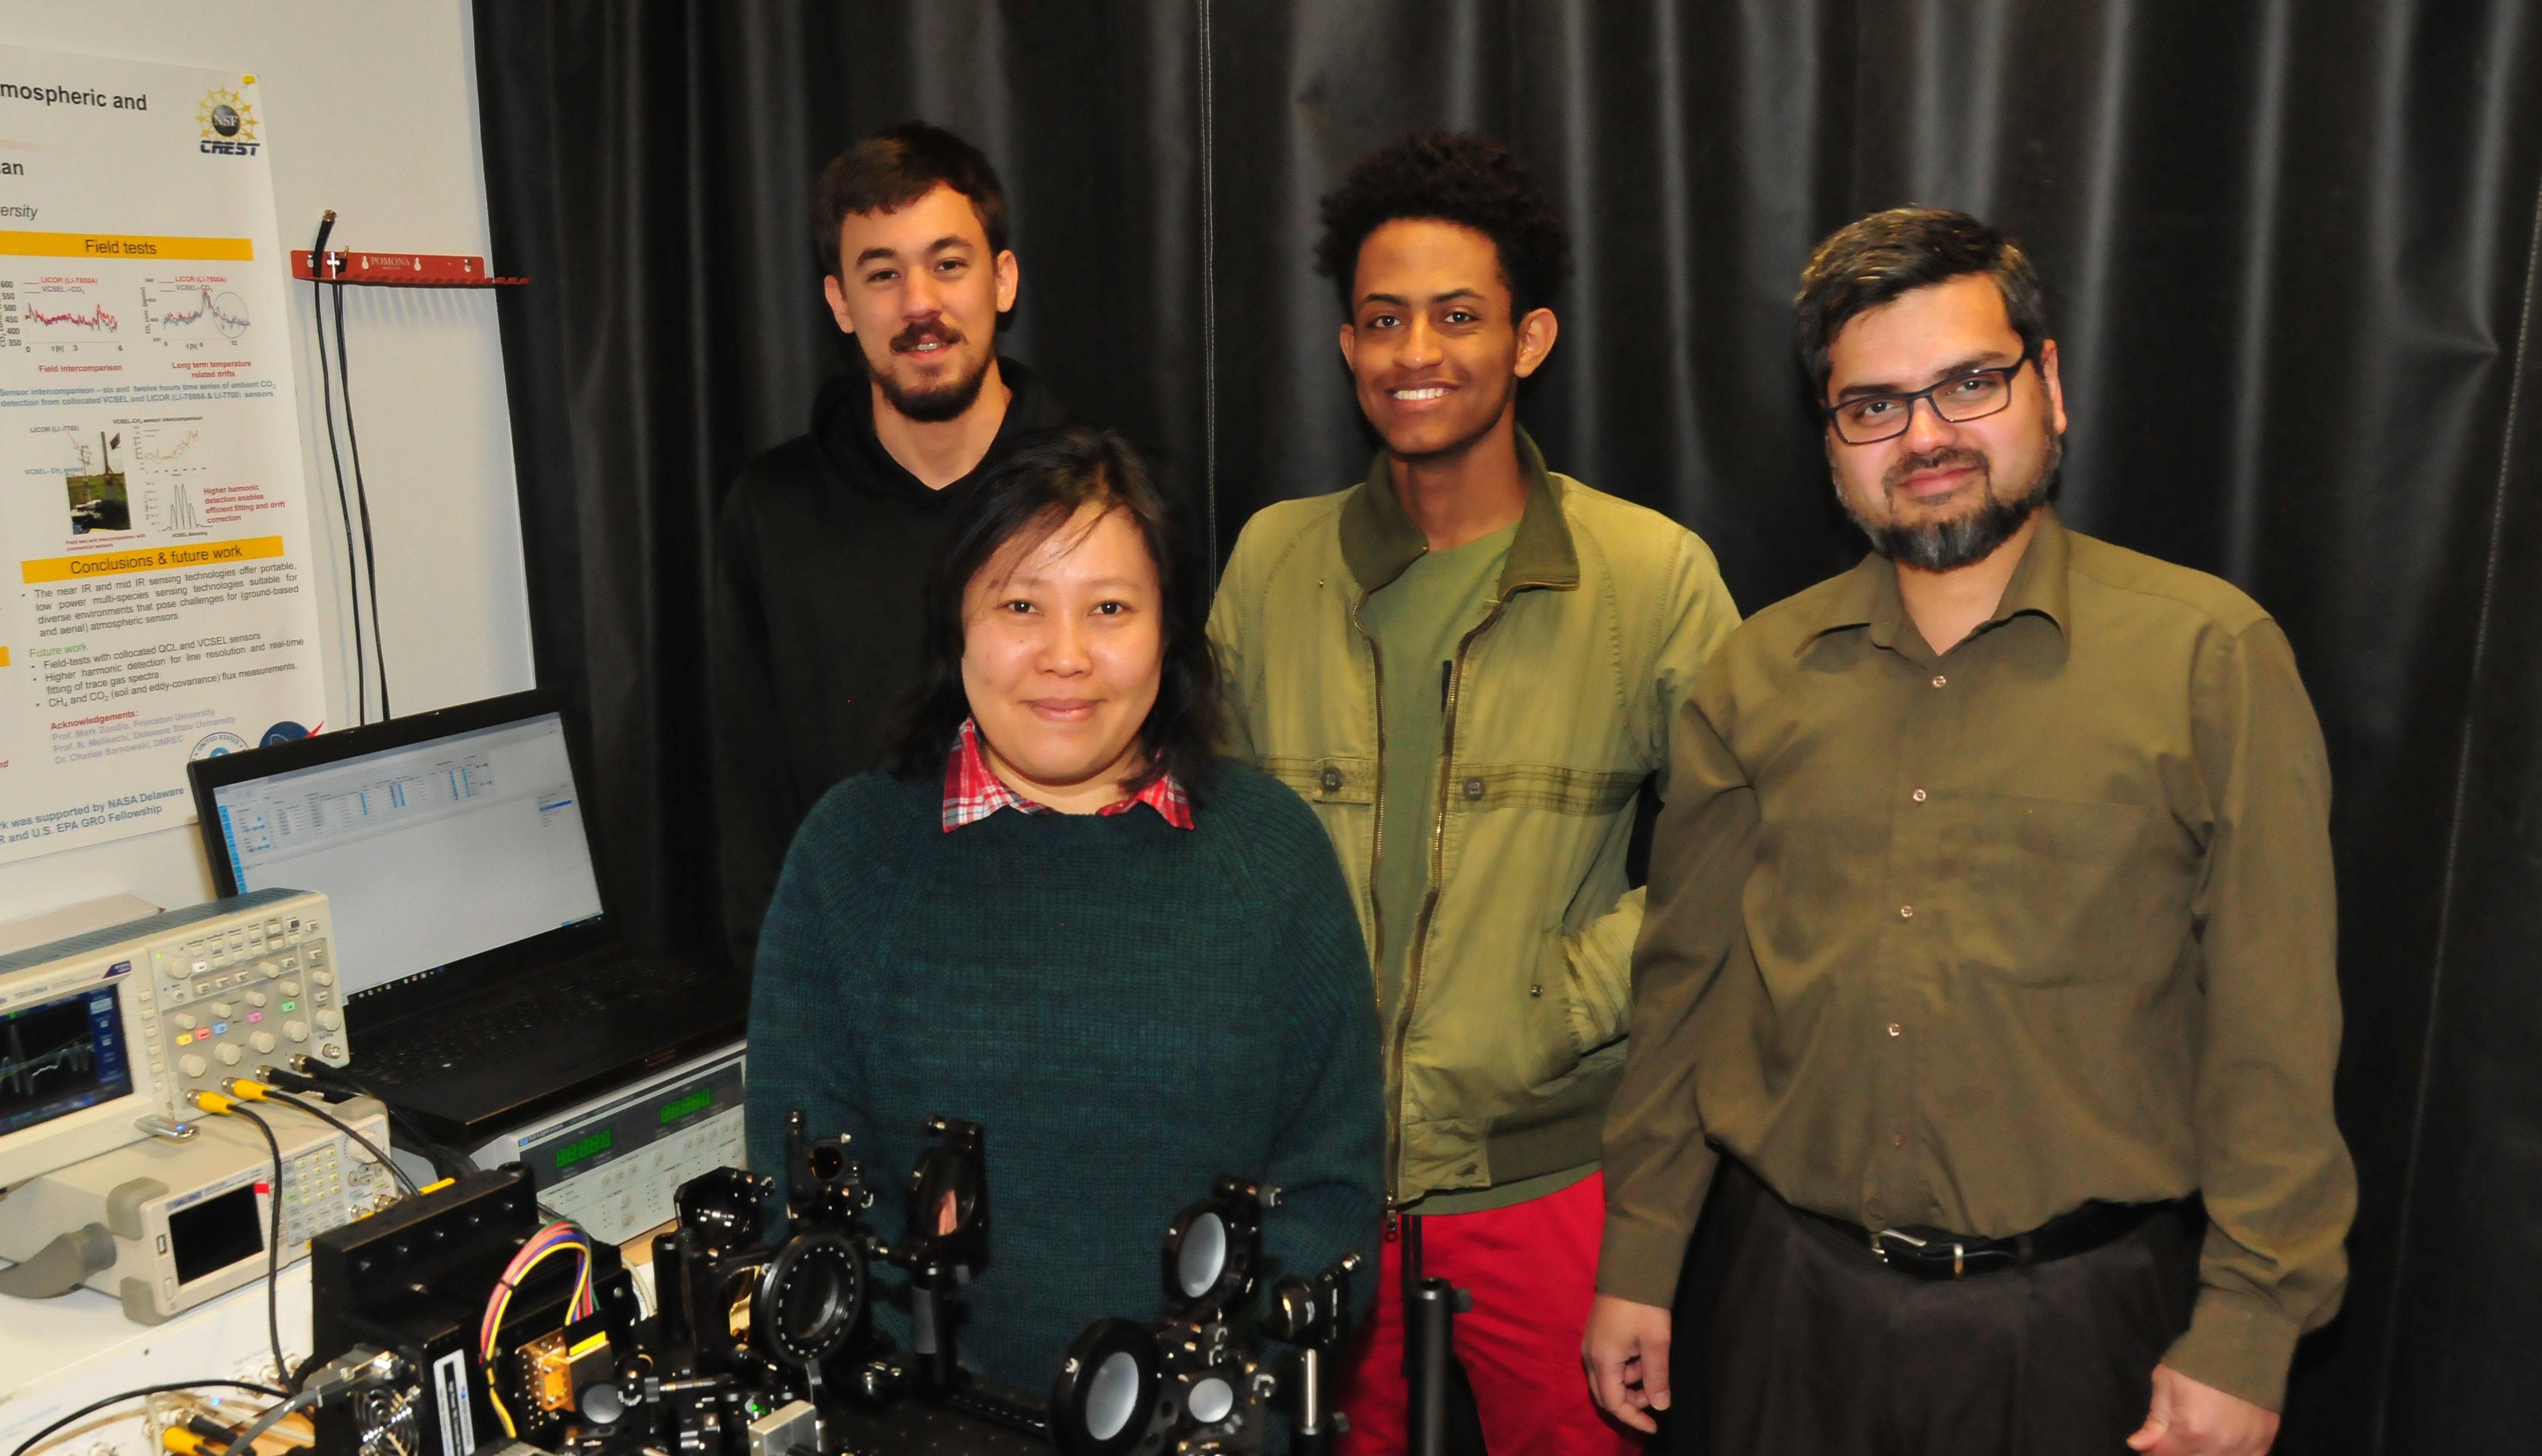 Chemical/Biological Warfare Sensor researchers: (l-r) Caio Azevedo, May Hlaing, Luil Menberu, and Dr. Mohammed Khan.